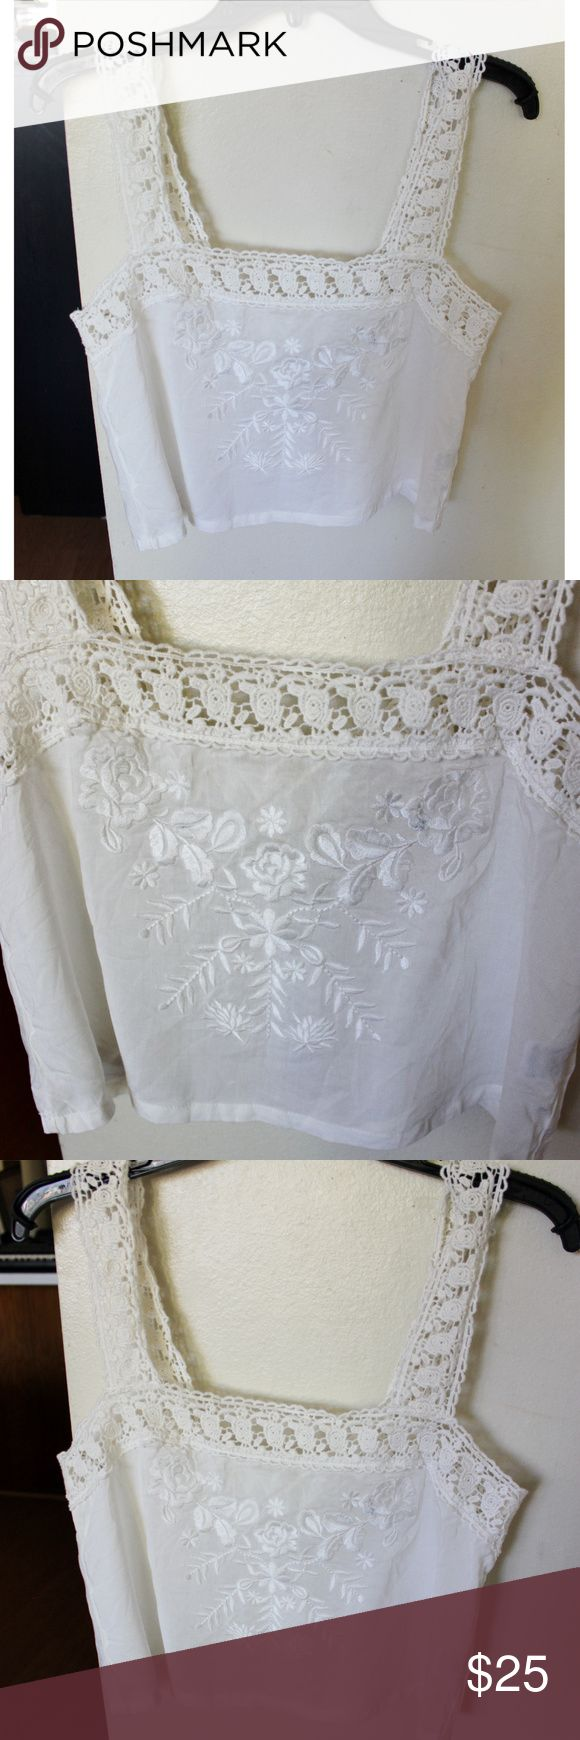 Millau Cream Embroidered Floral Flowy Crop Top M A Millau cream crop top in a size medium. Has crochet straps and has embroidered flowers on the front. Fits flowy and is semi-sheer. Very boho and cute. This brand is sold in stores like Free People and Anthropologie. The blouse is in new condition with its tag, the price was removed because it was a gift. Has some deep winkles that will probably need to be hand washed to remove. There are also 2 areas where it looks like there's a light stain…